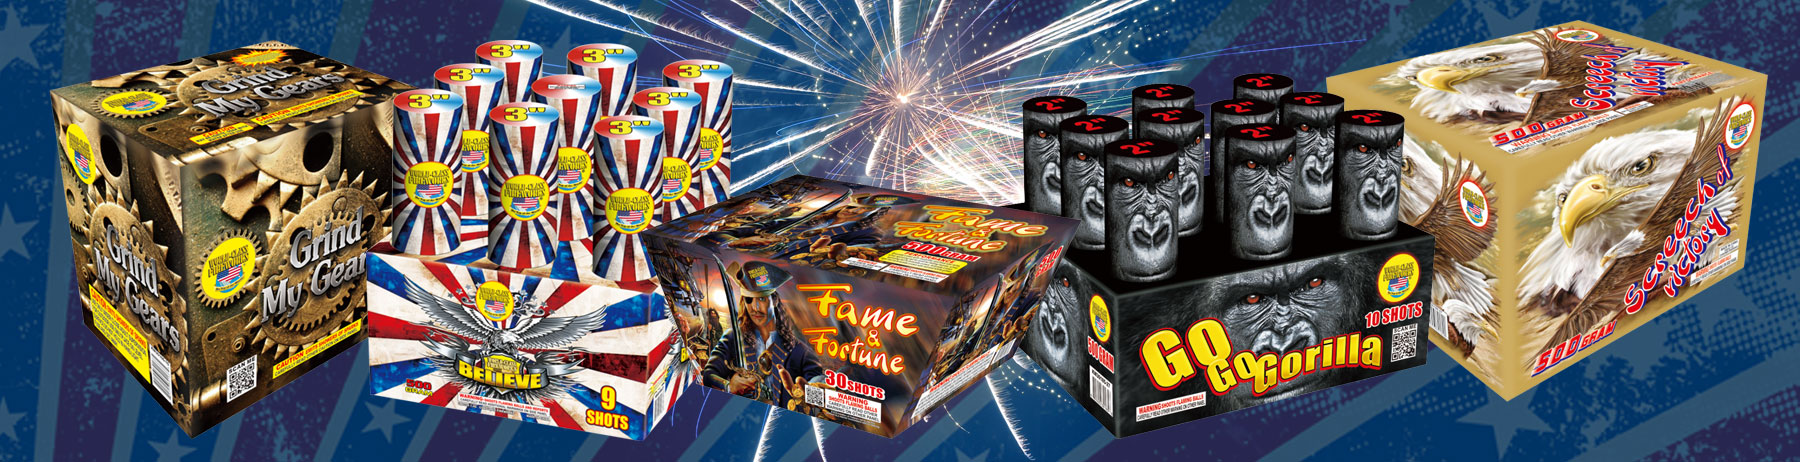 New Fireworks For 2016